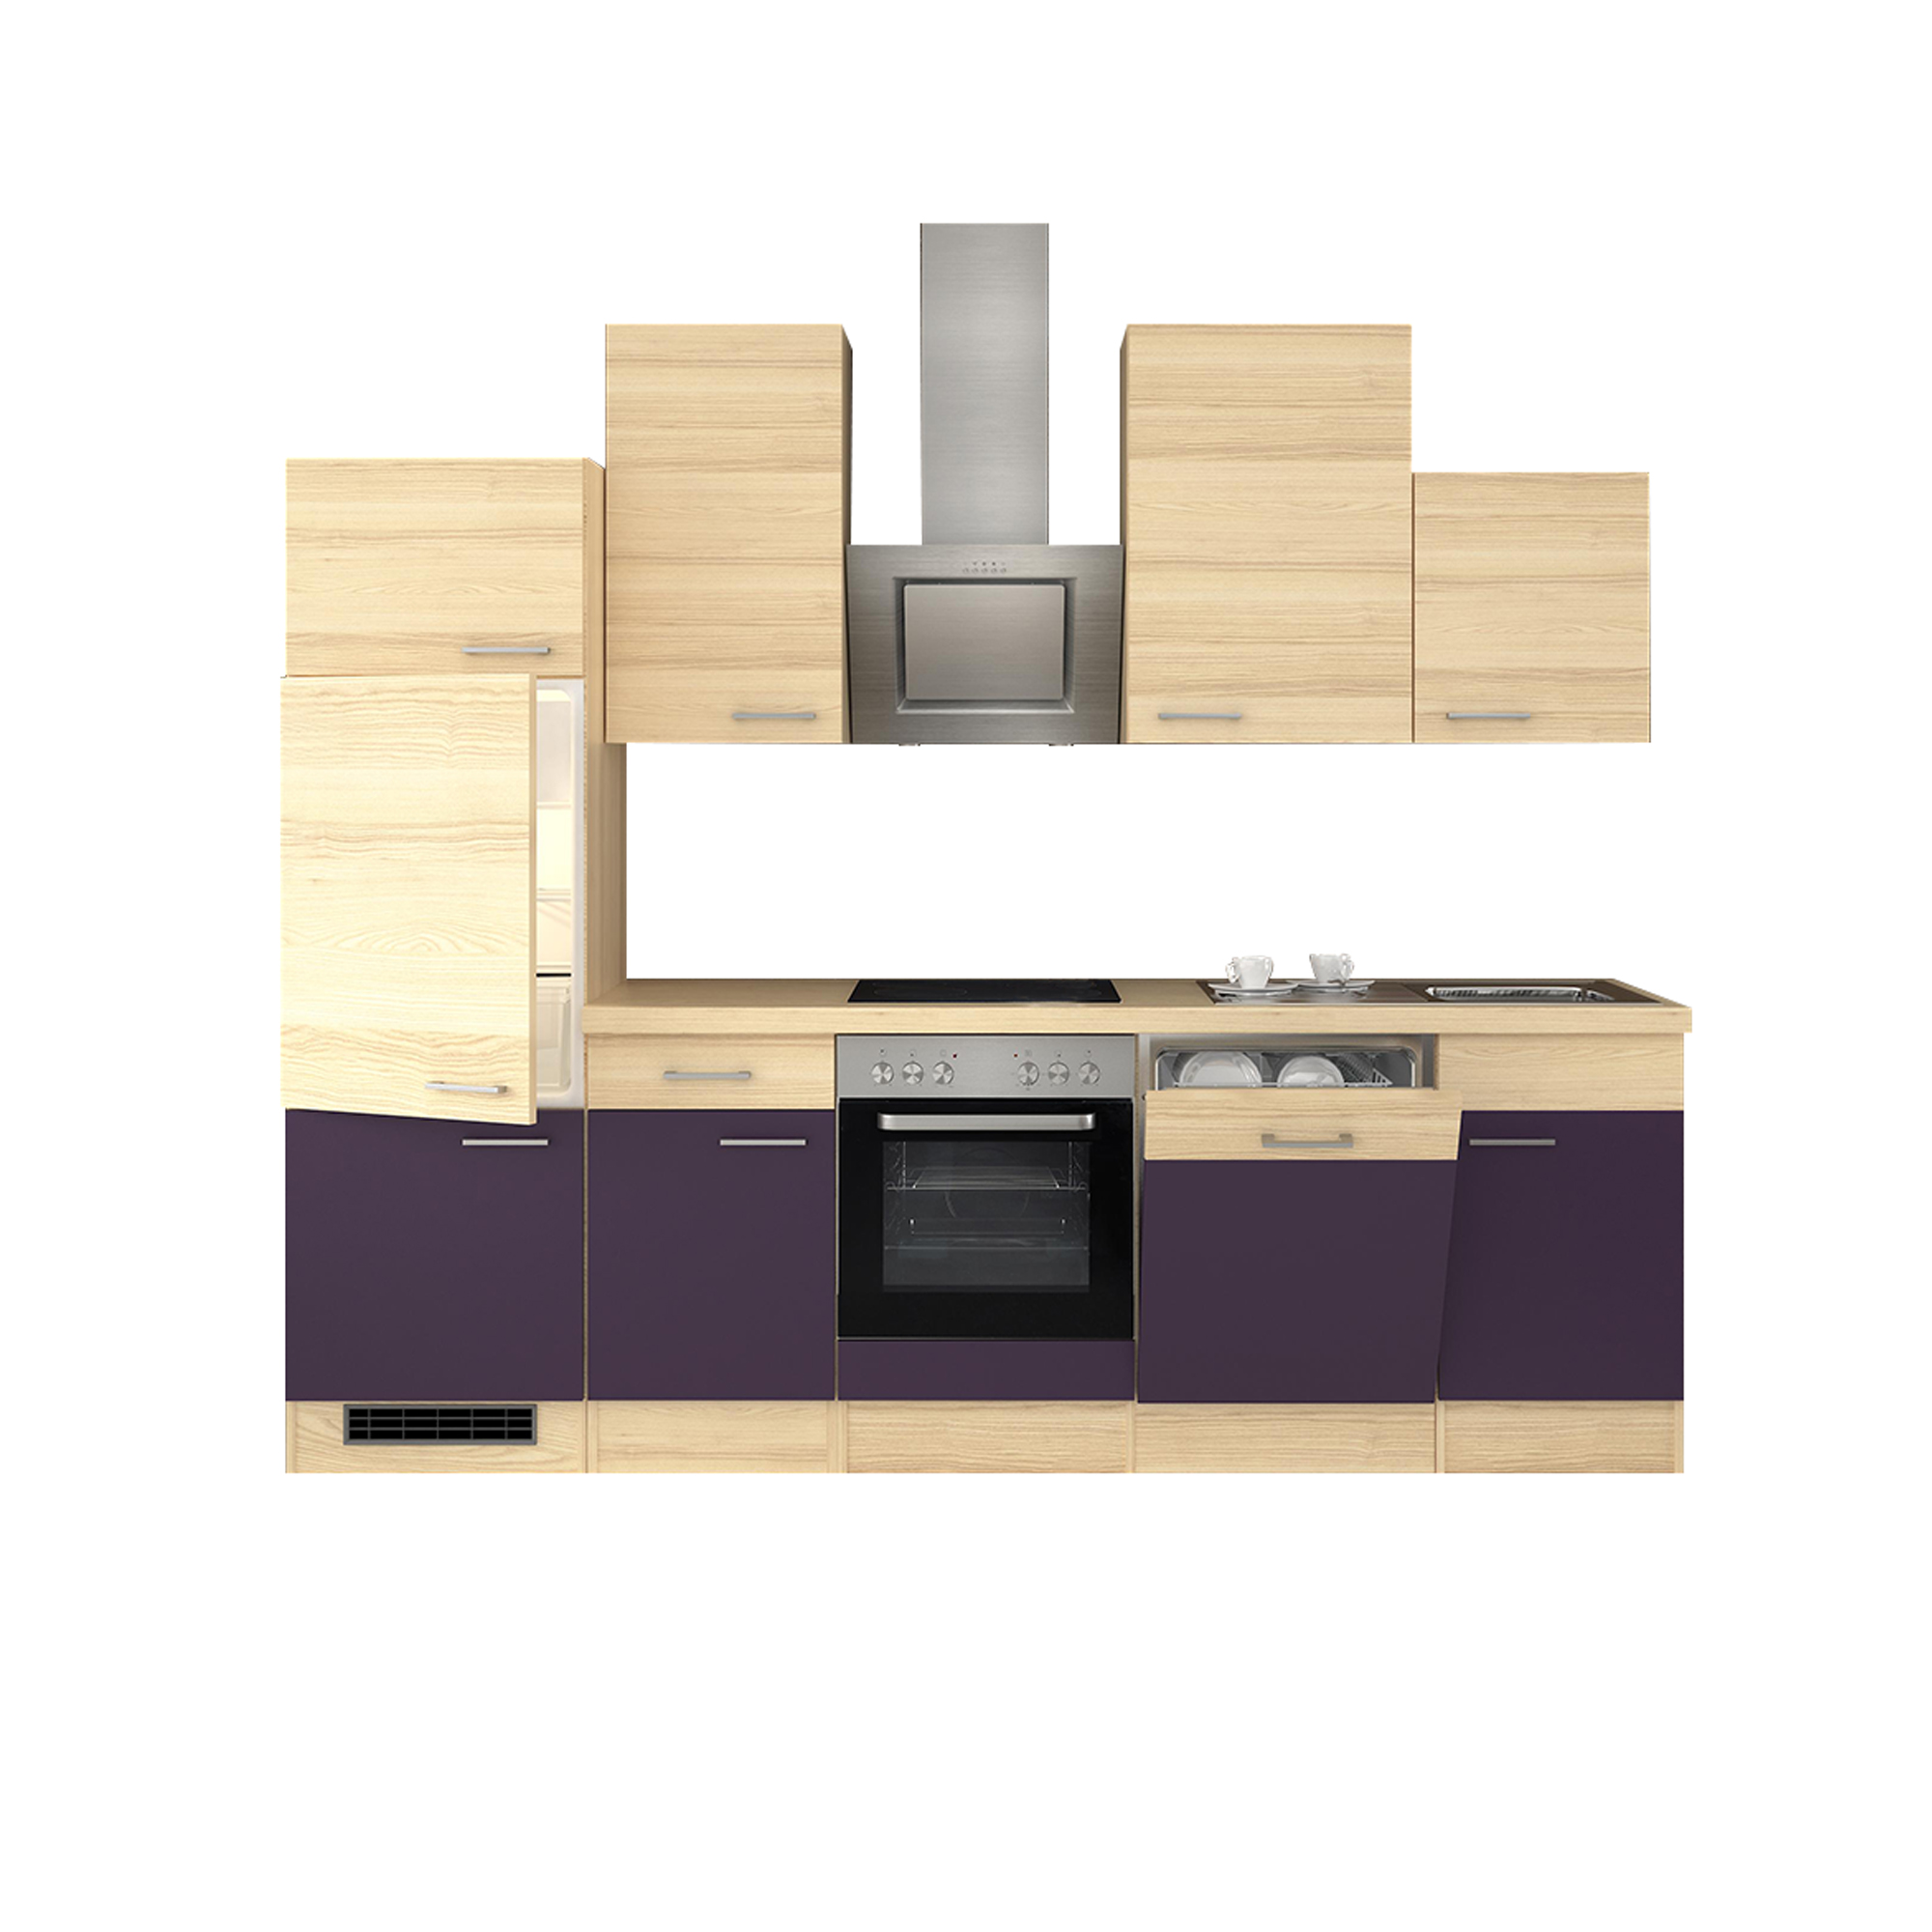 k chenzeile focus k che mit e ger ten 14 teilig breite 280 cm aubergine k che k chenzeilen. Black Bedroom Furniture Sets. Home Design Ideas